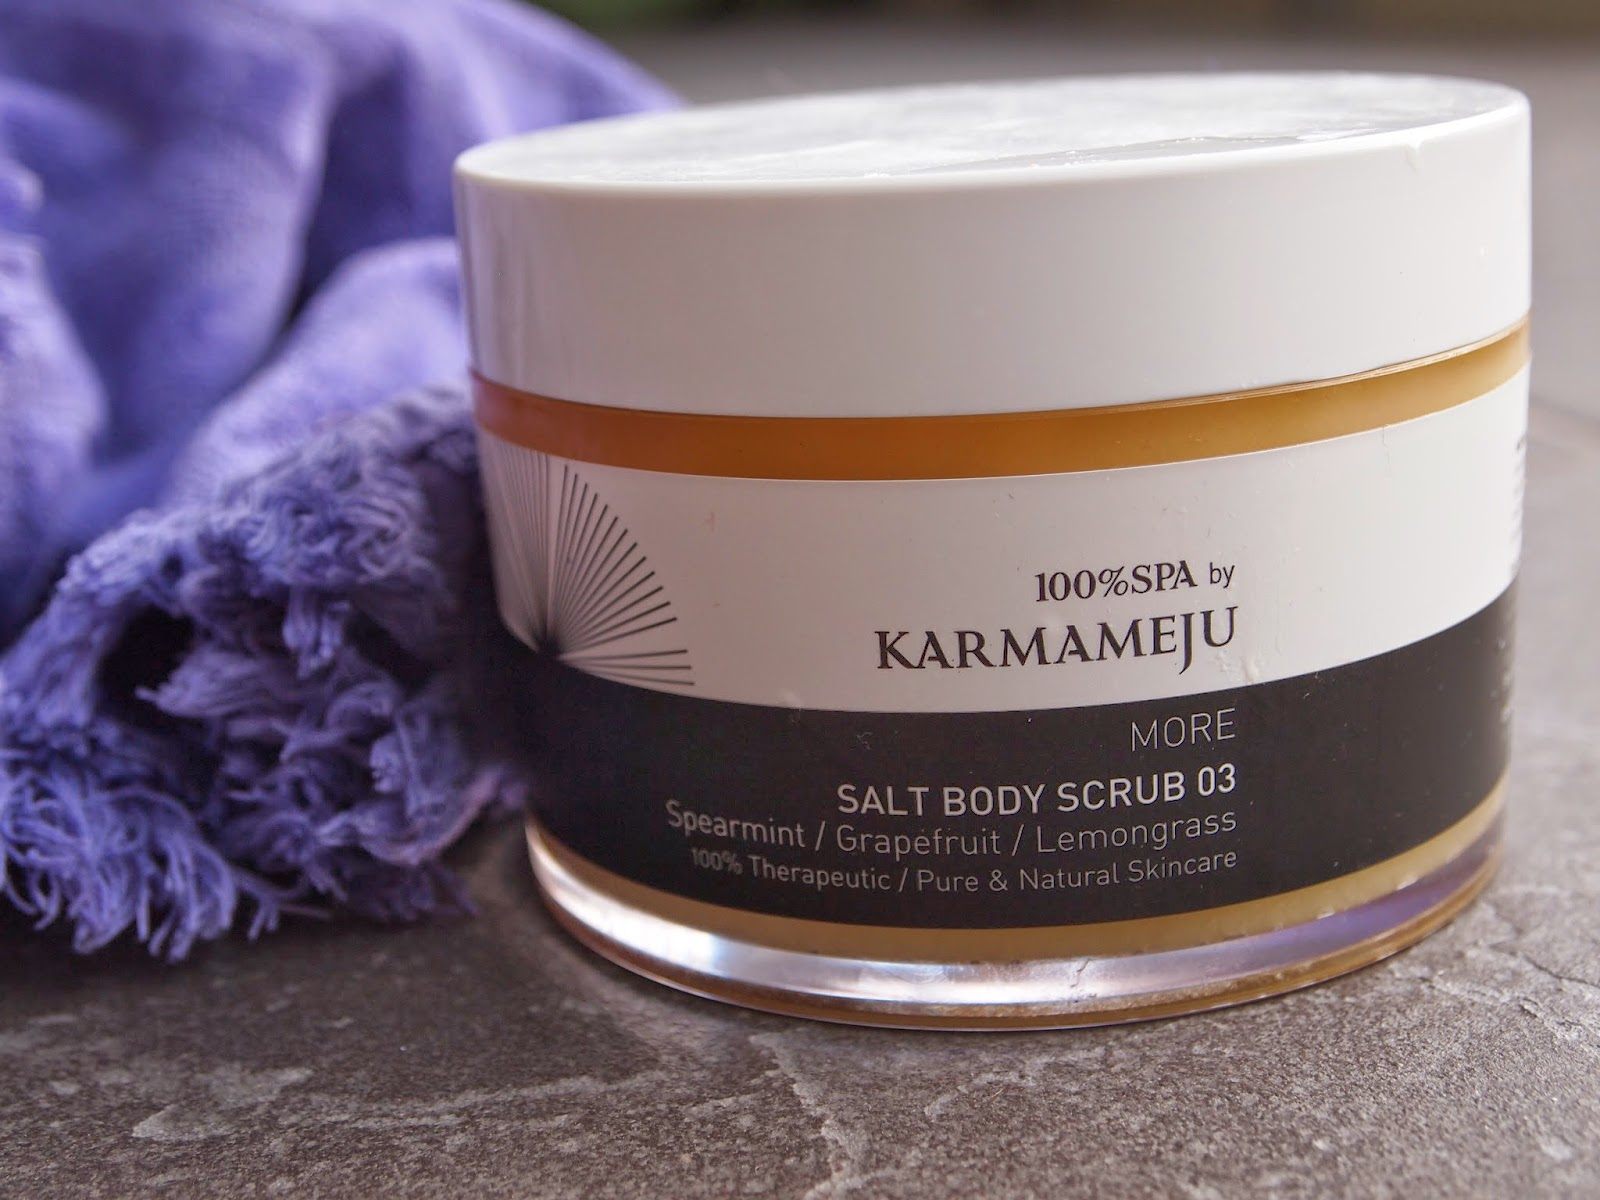 100% SPA by Karmameju Salt Body Scrub 03